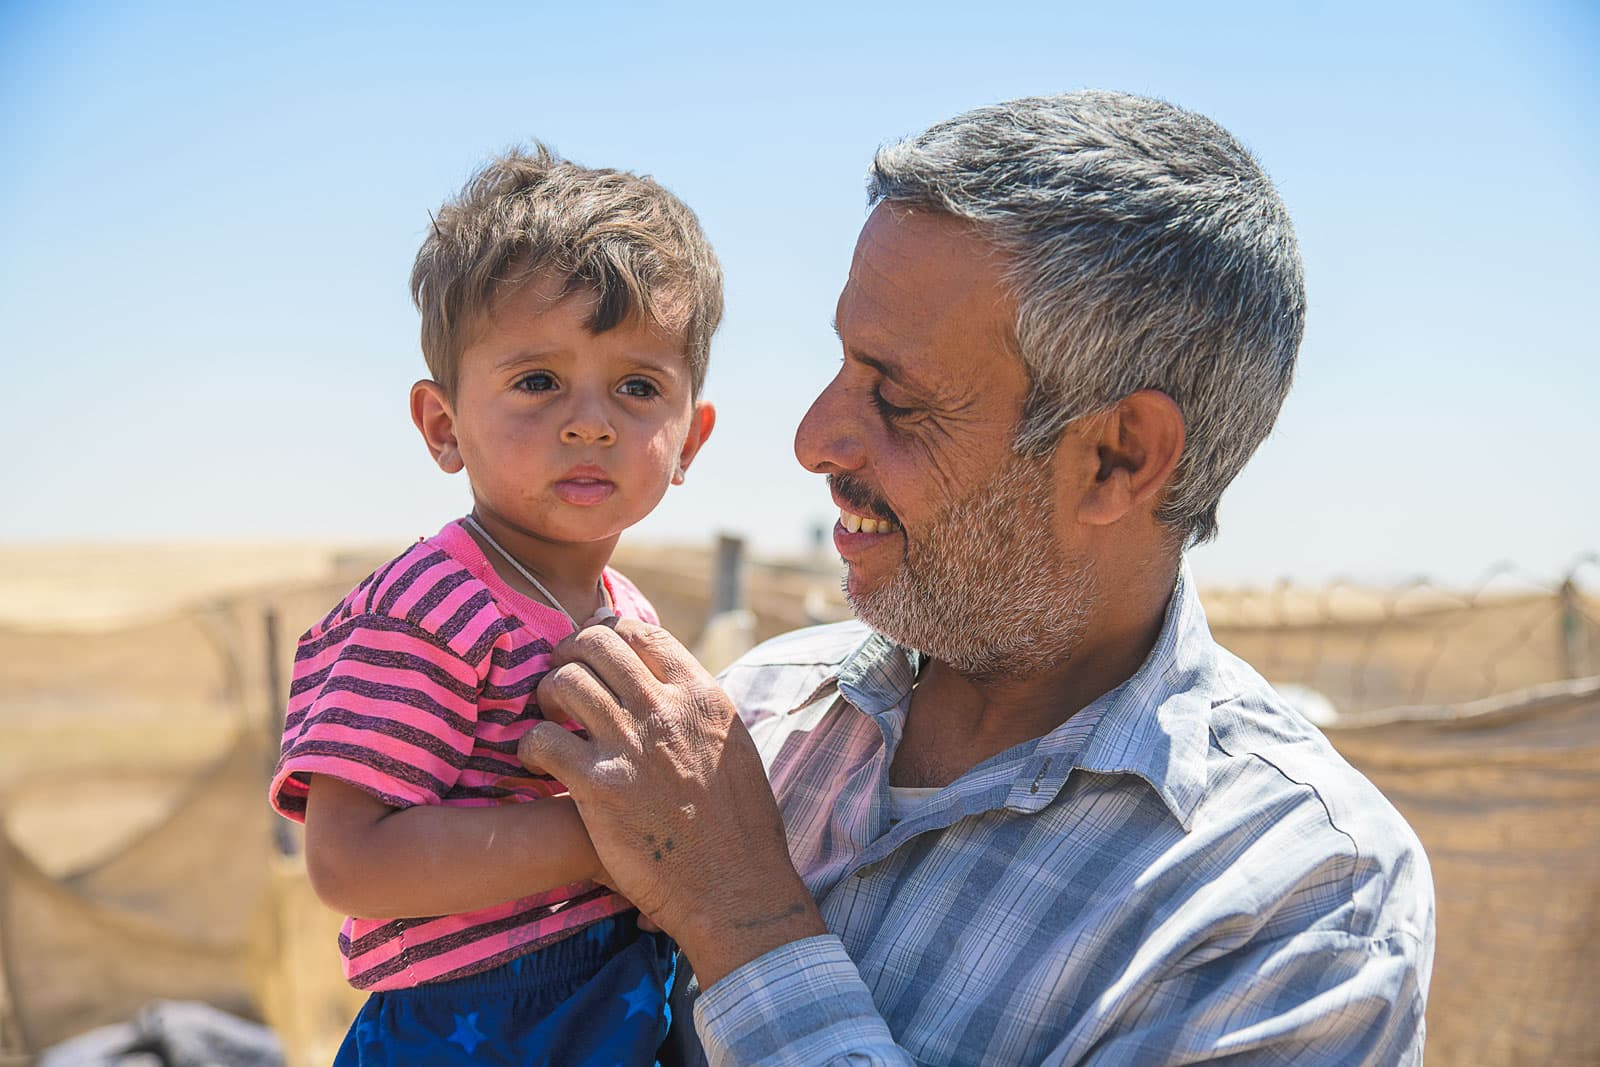 Iraqi father and son